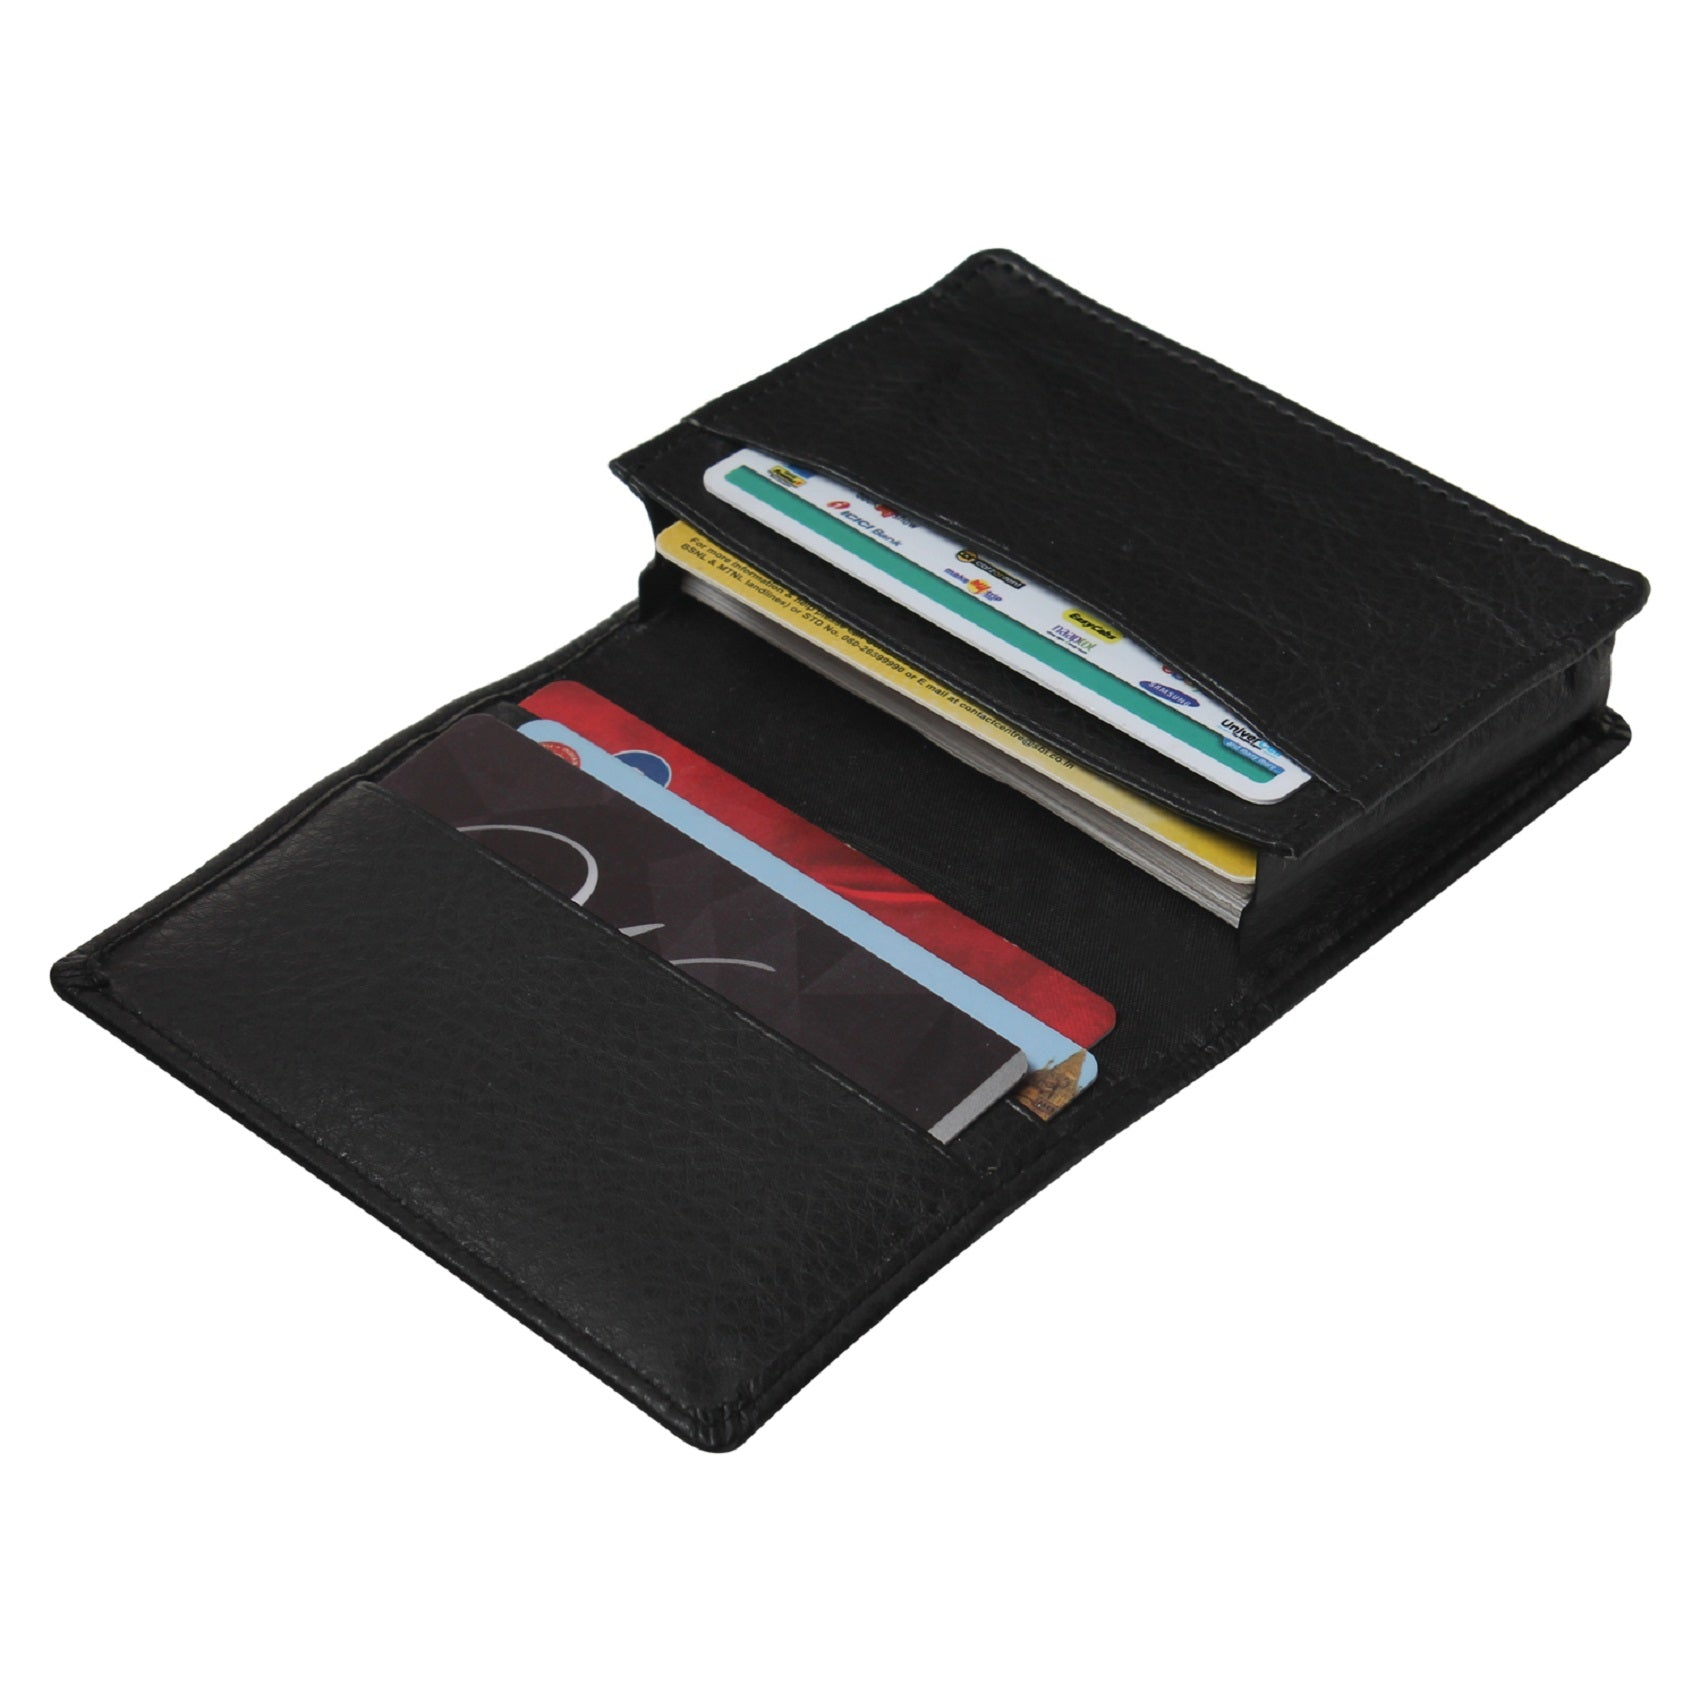 Genuine Leather Black Credit Card Holder||Money Purse||Pocket Wallet for Men and Women